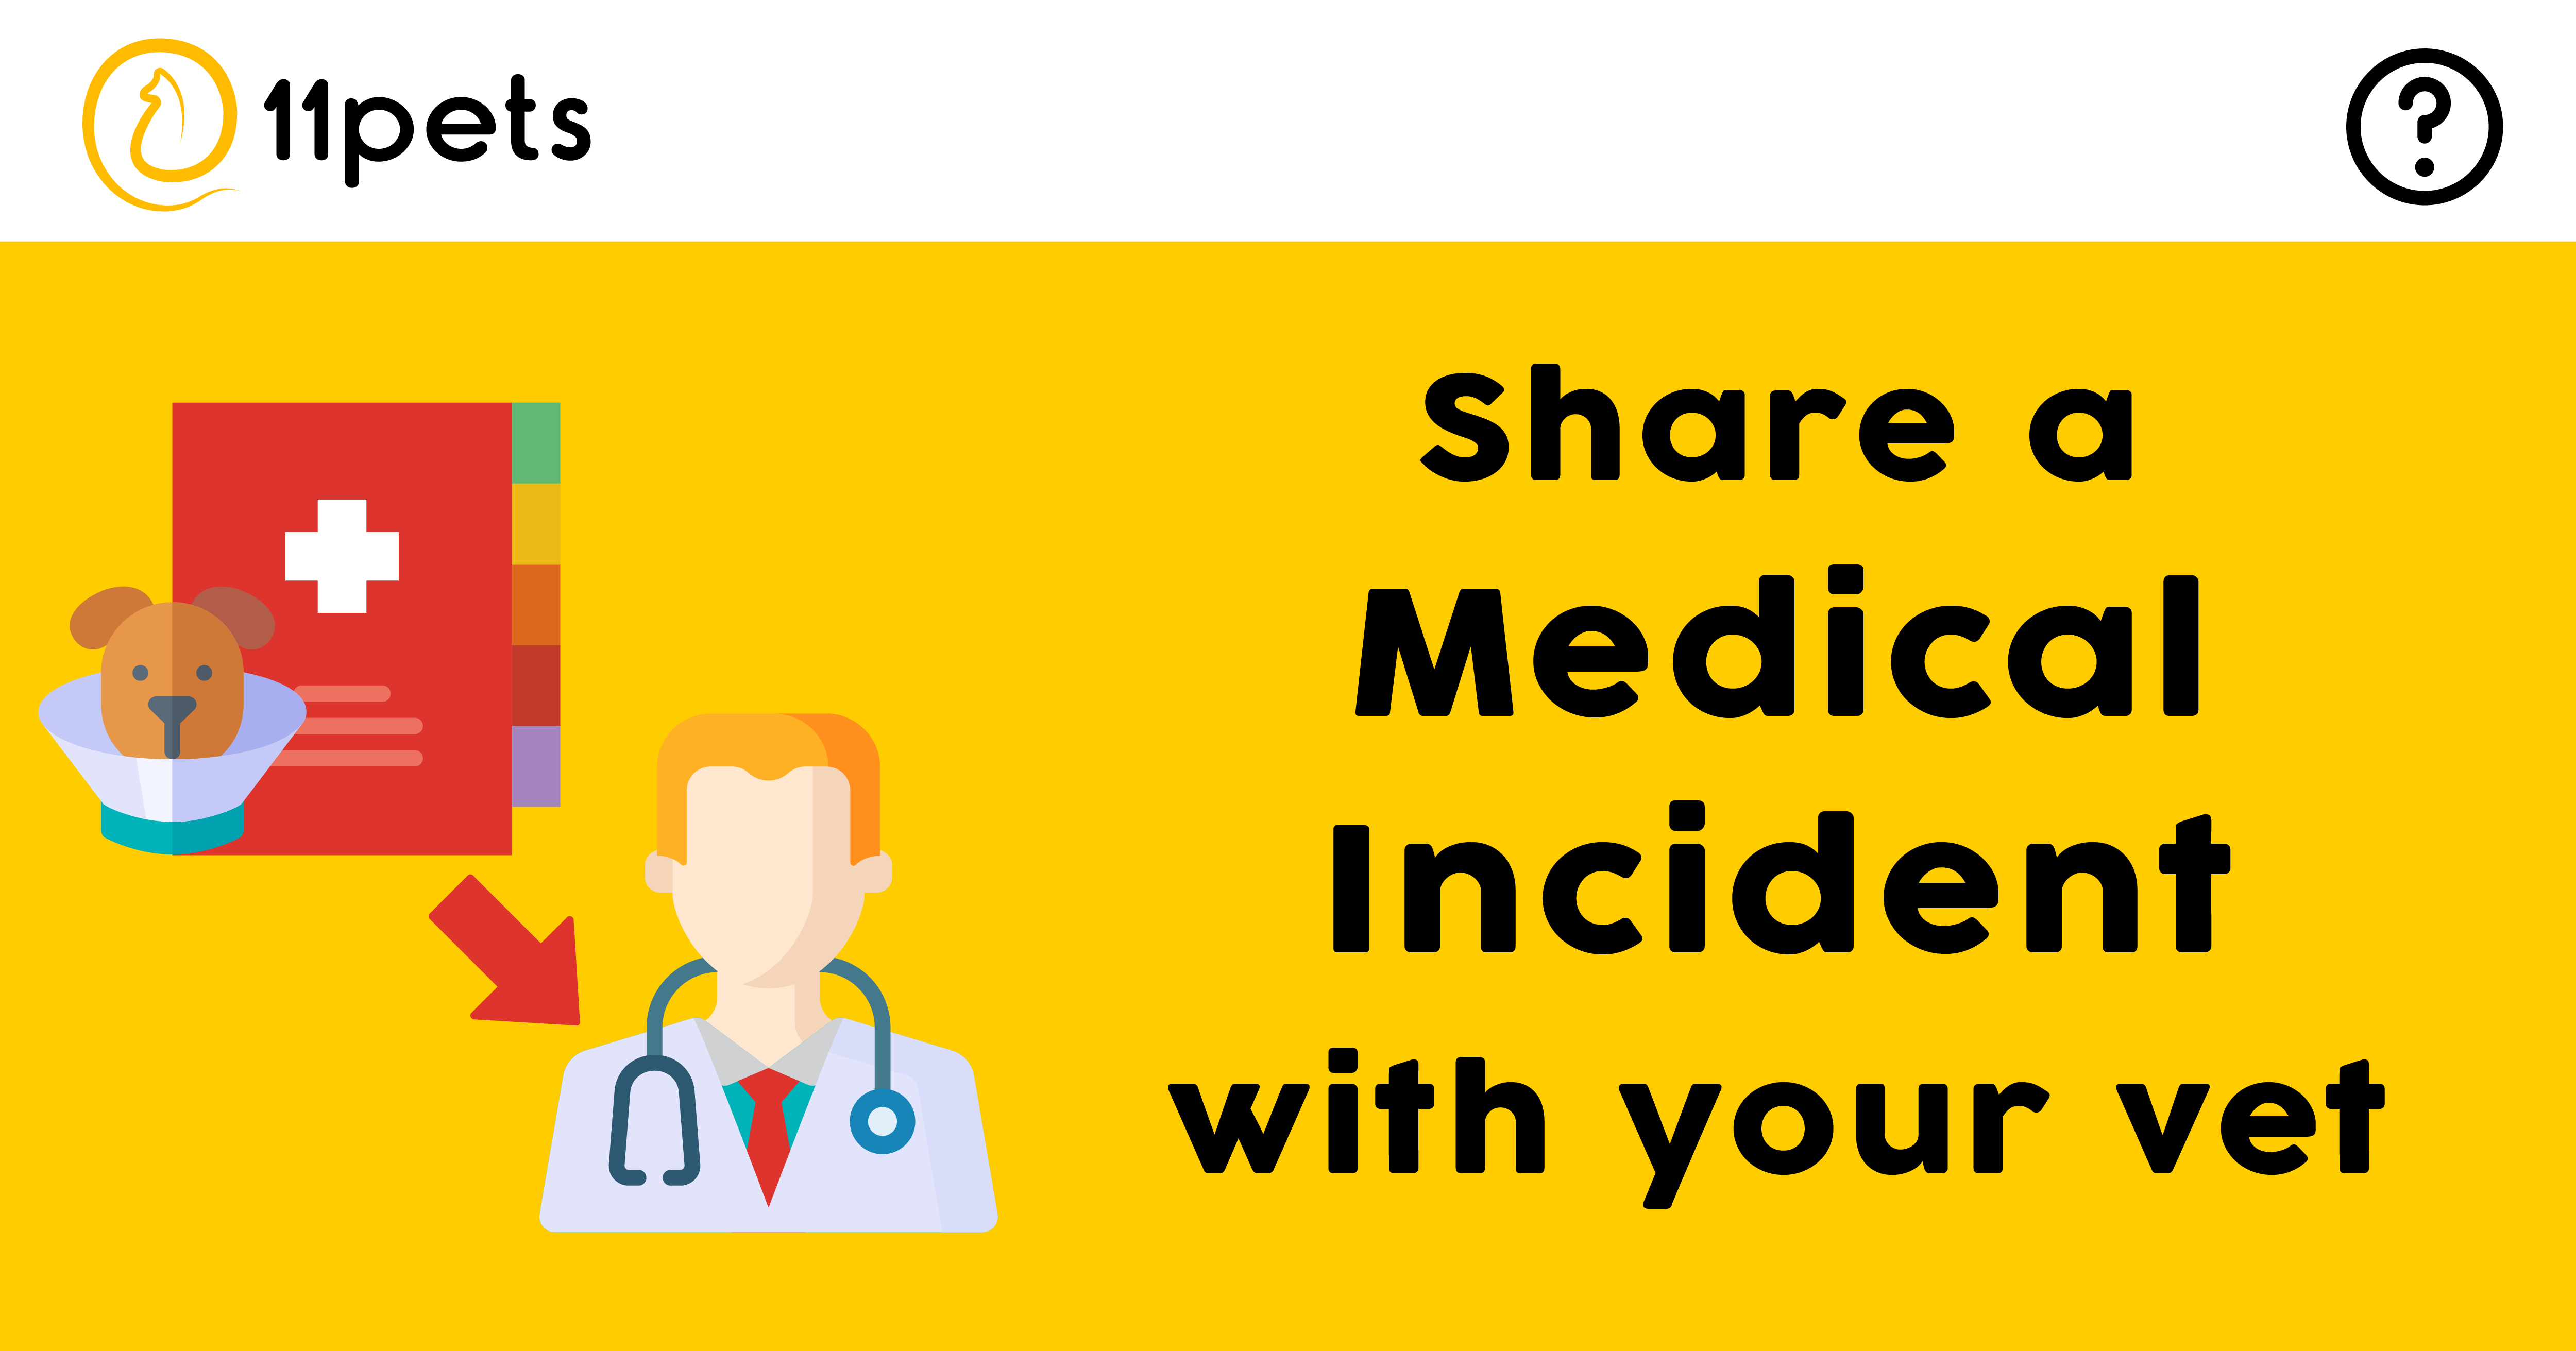 Share a Medical Incident with your veterinarian